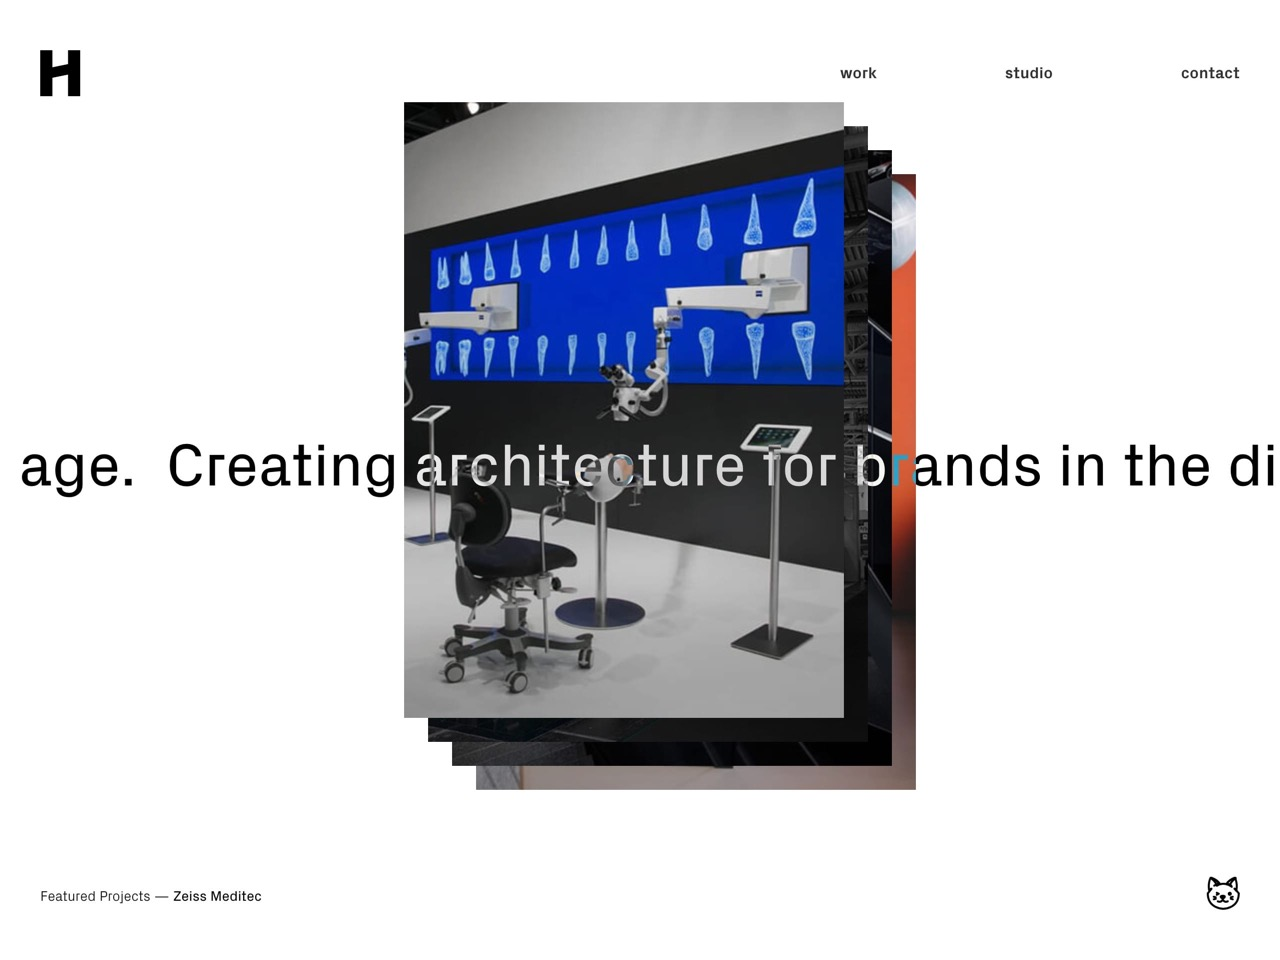 Heller designstudio   creating architecture for brands in the digital age